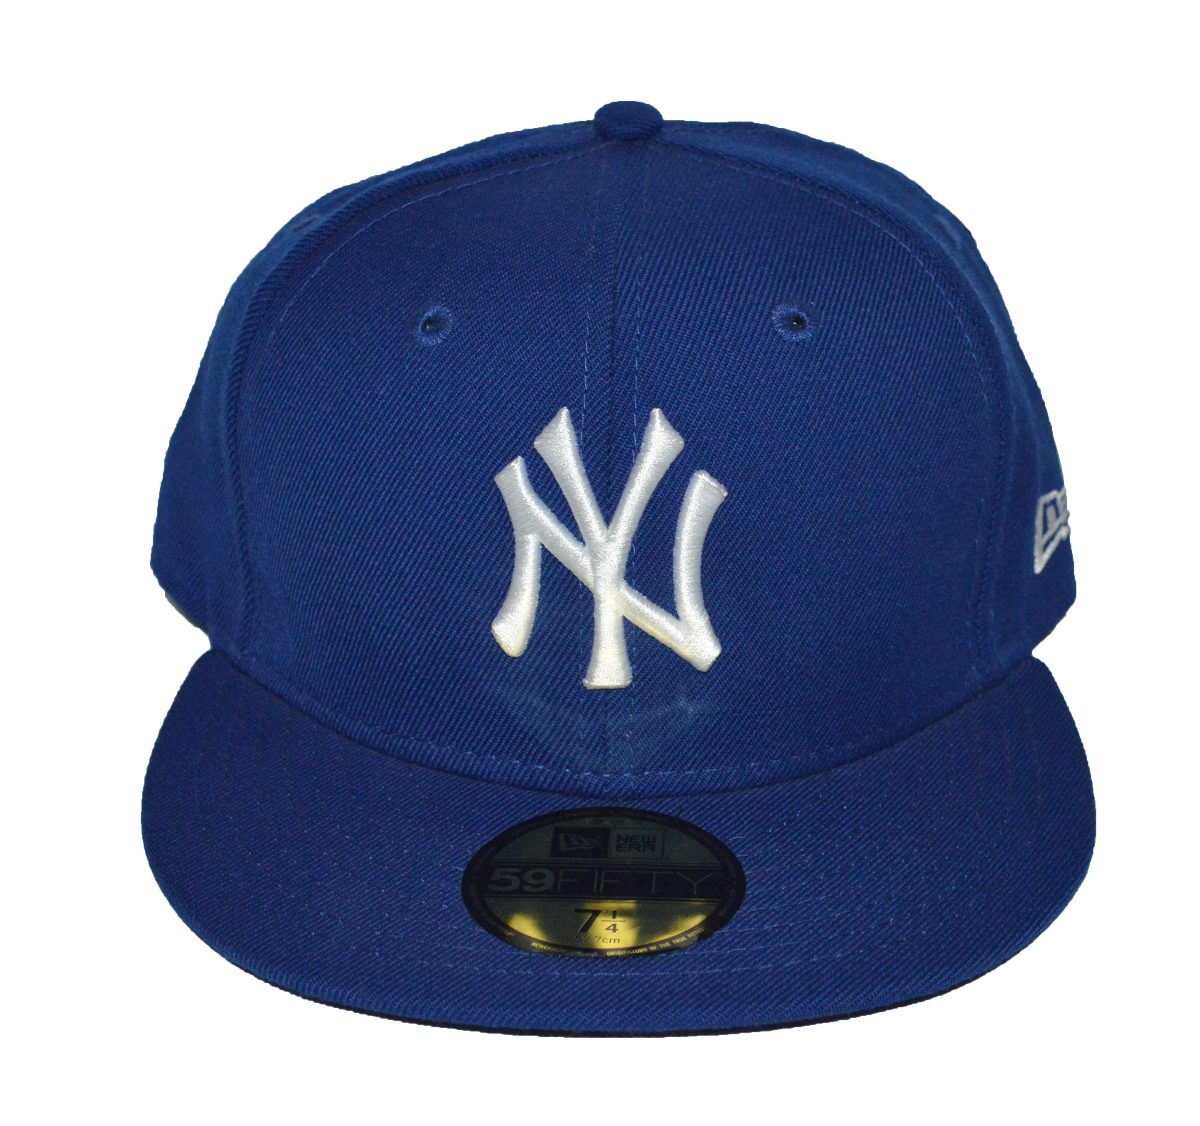 boné new era aba reta fechado 5950 mlb new york yankees. Carregando zoom. be2cf6f9f7f